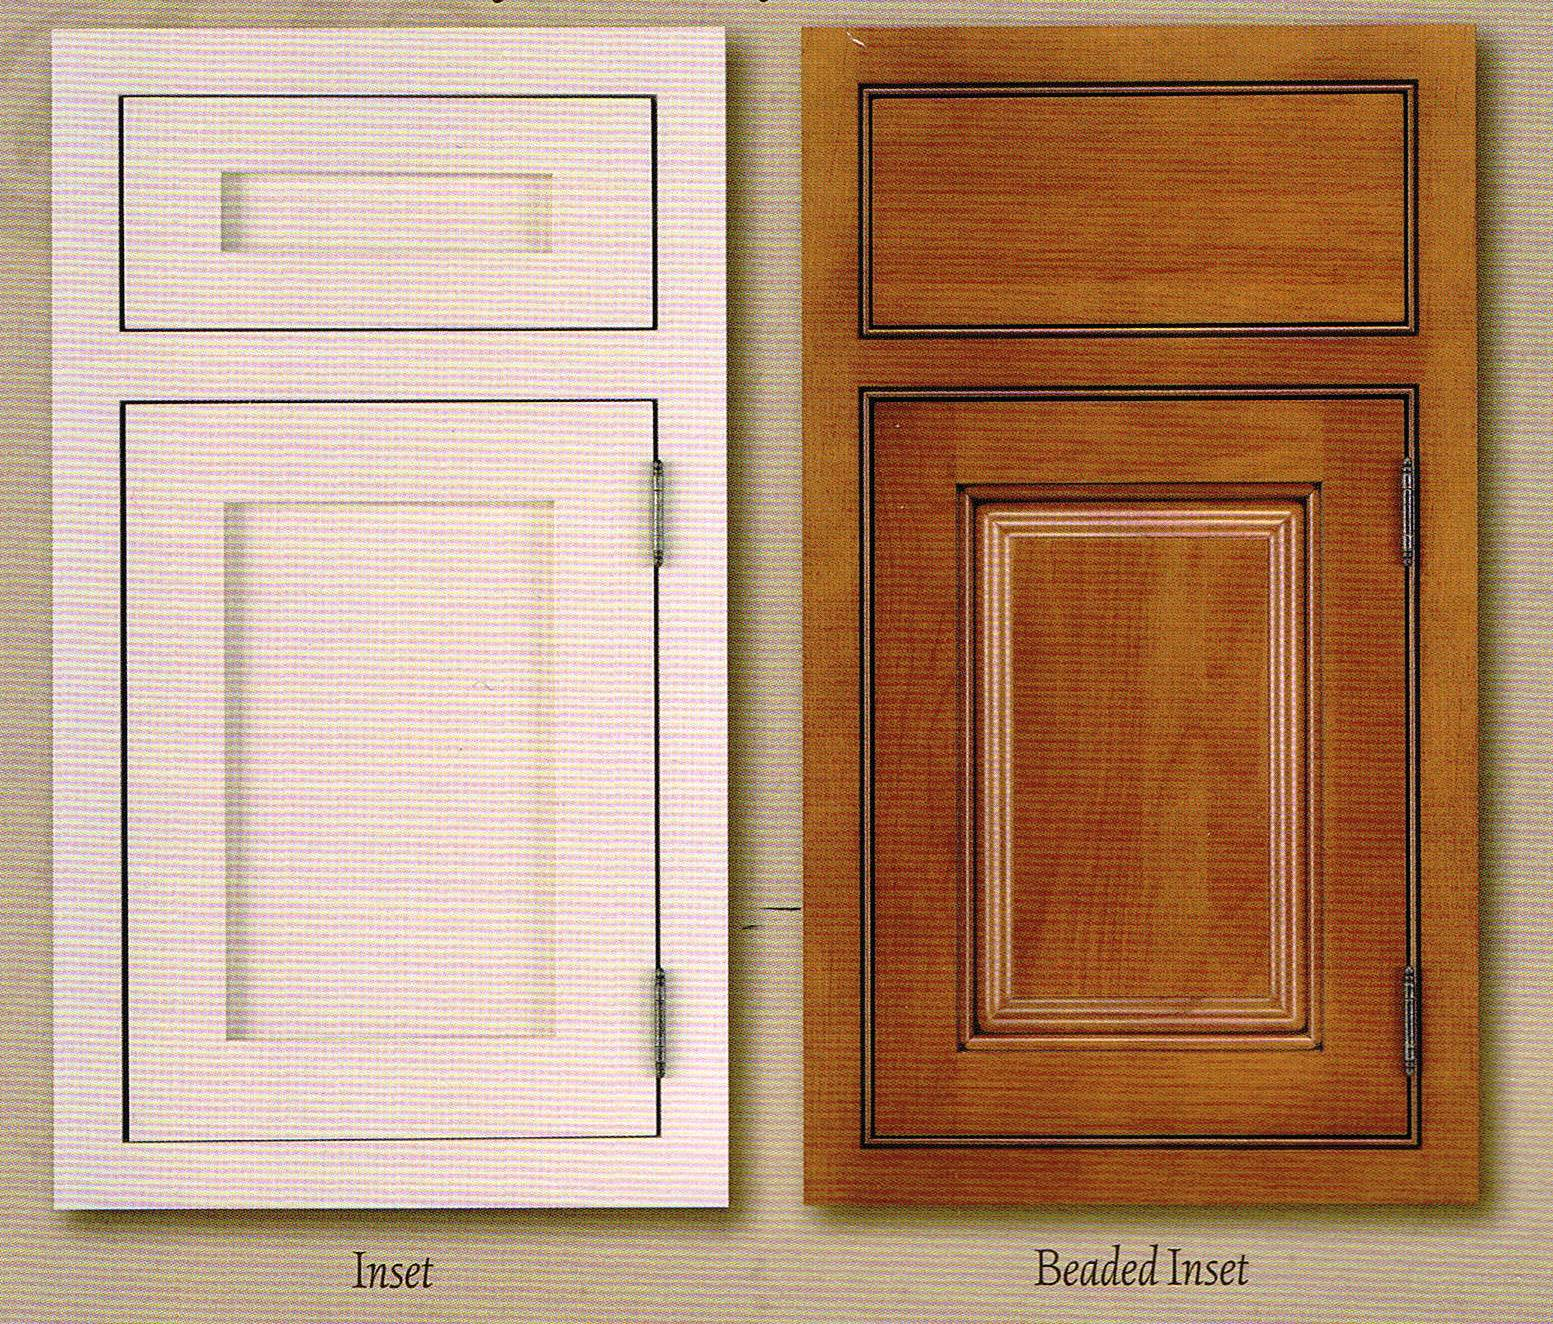 Cabinetry with inset drawers and doors cabinet doors for Kitchen cabinet doors